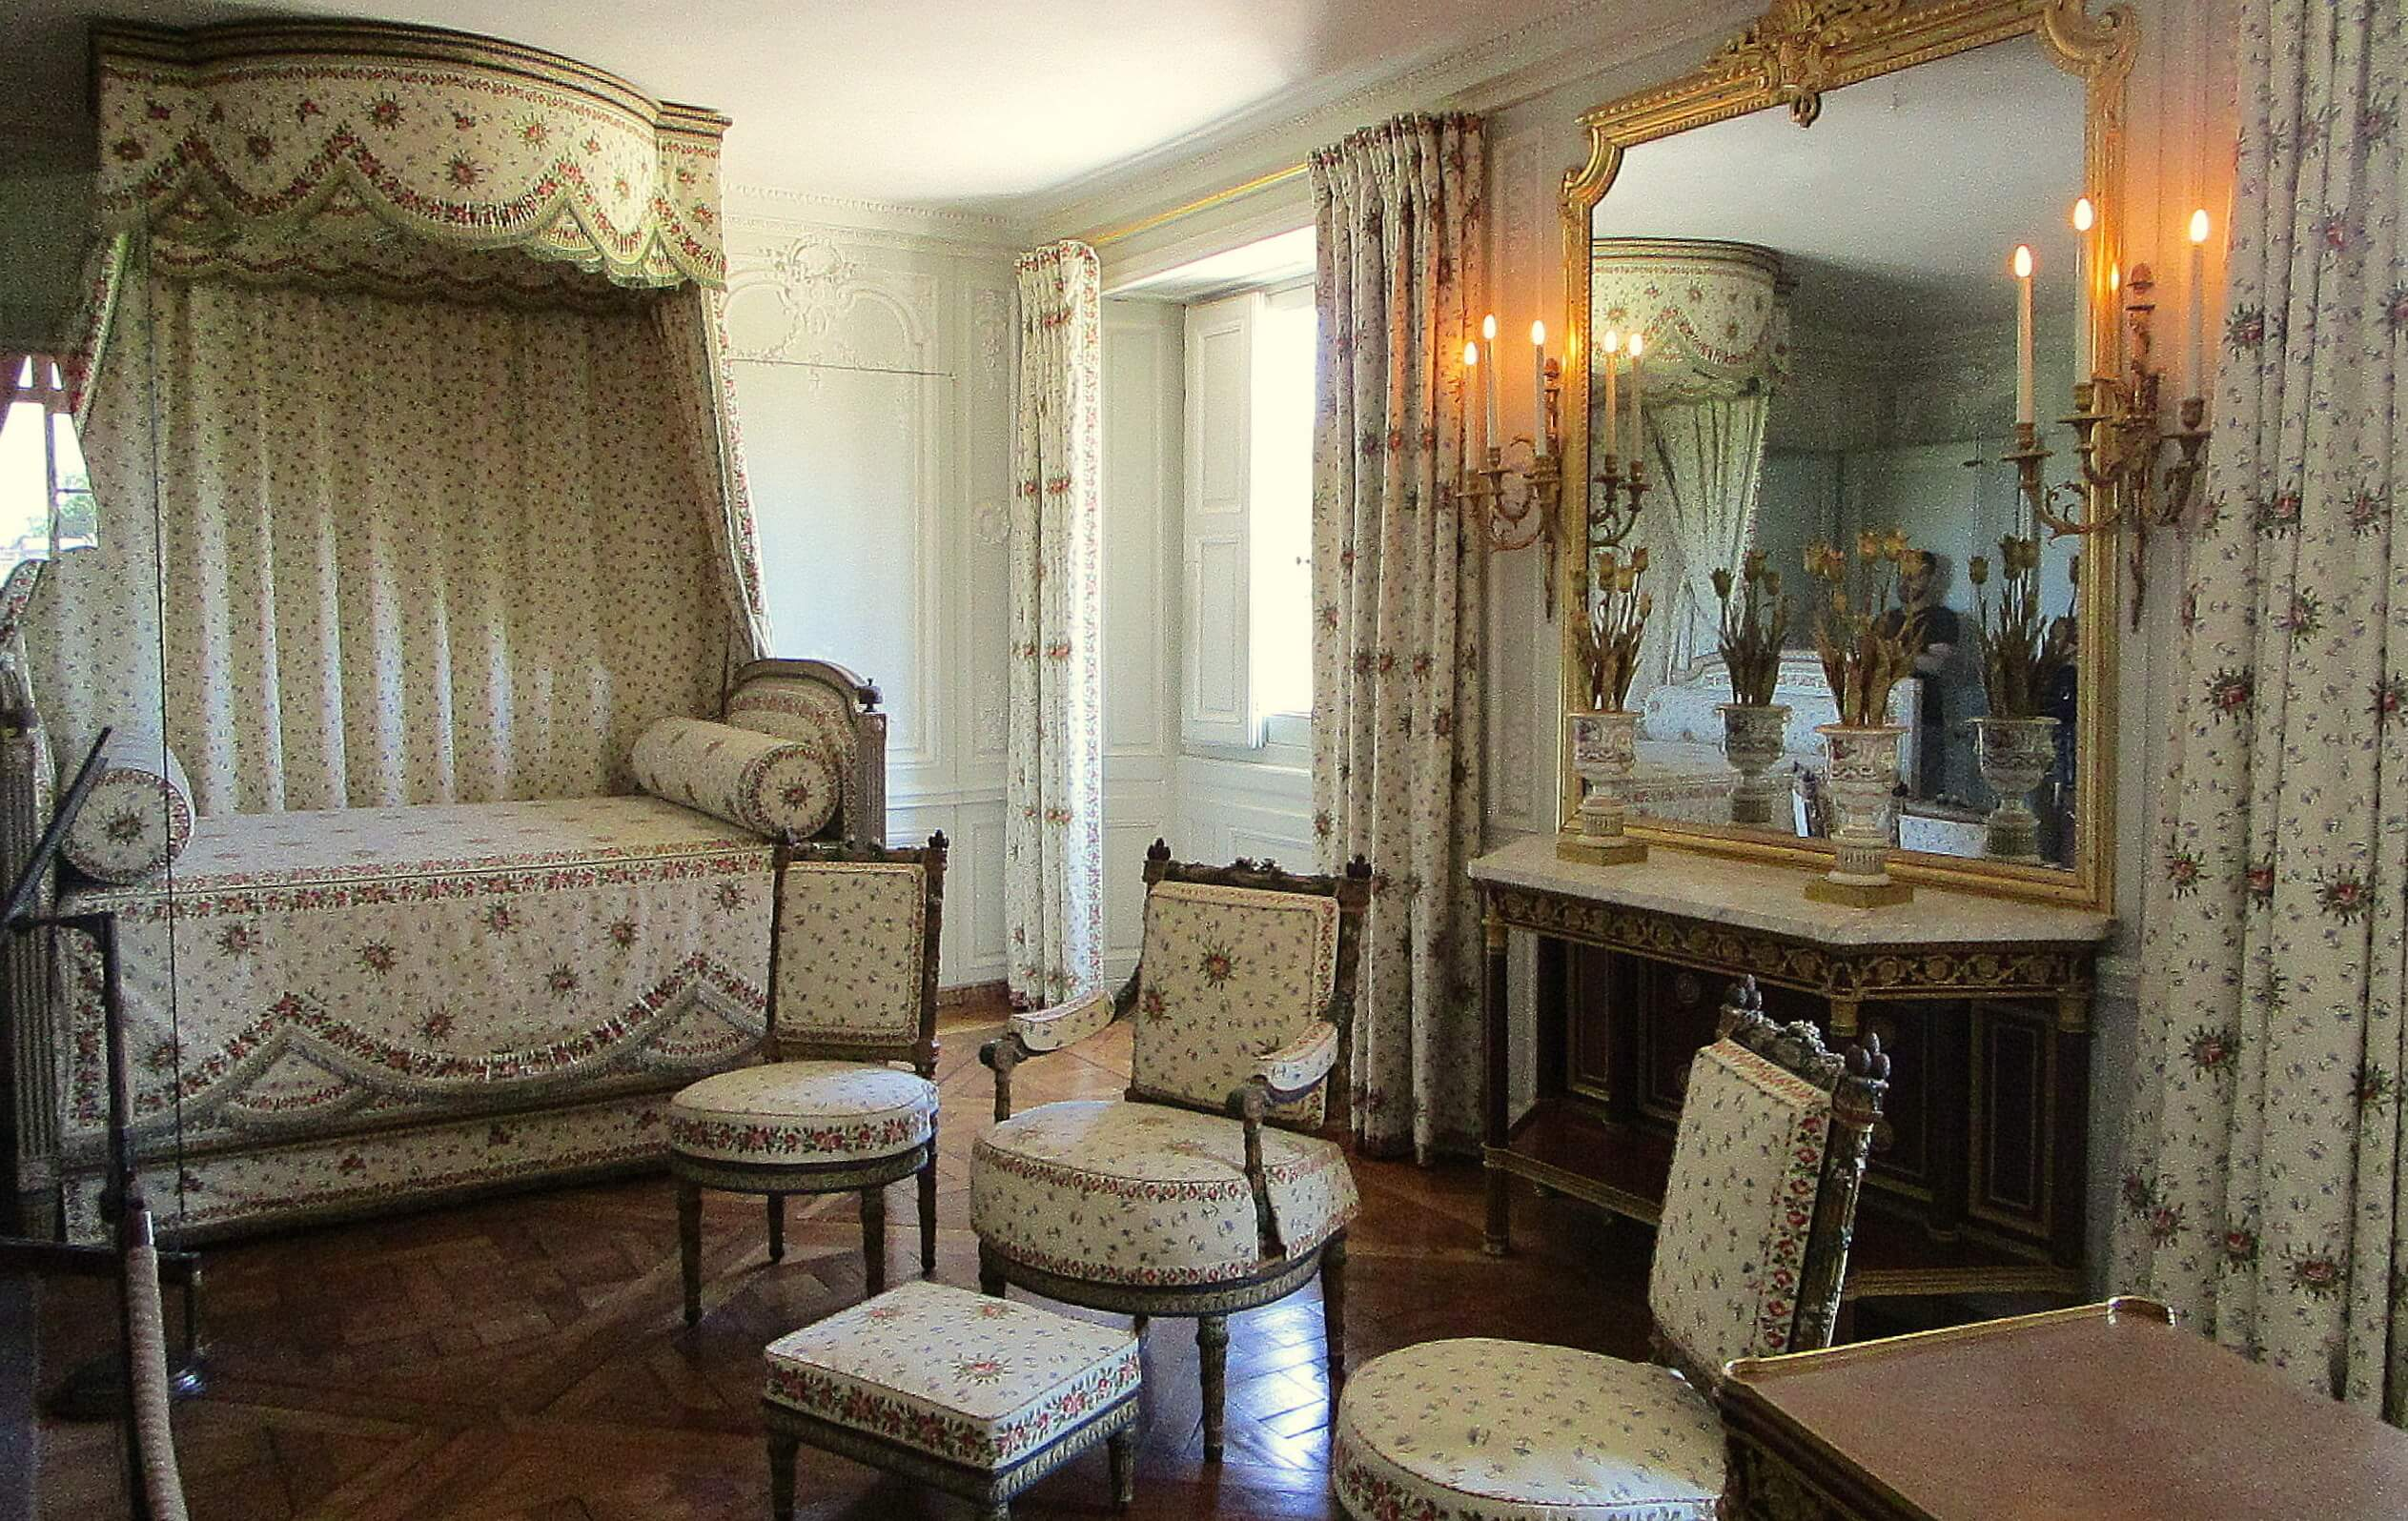 Marie Antoinette's Bedroom at the Petit Trianon